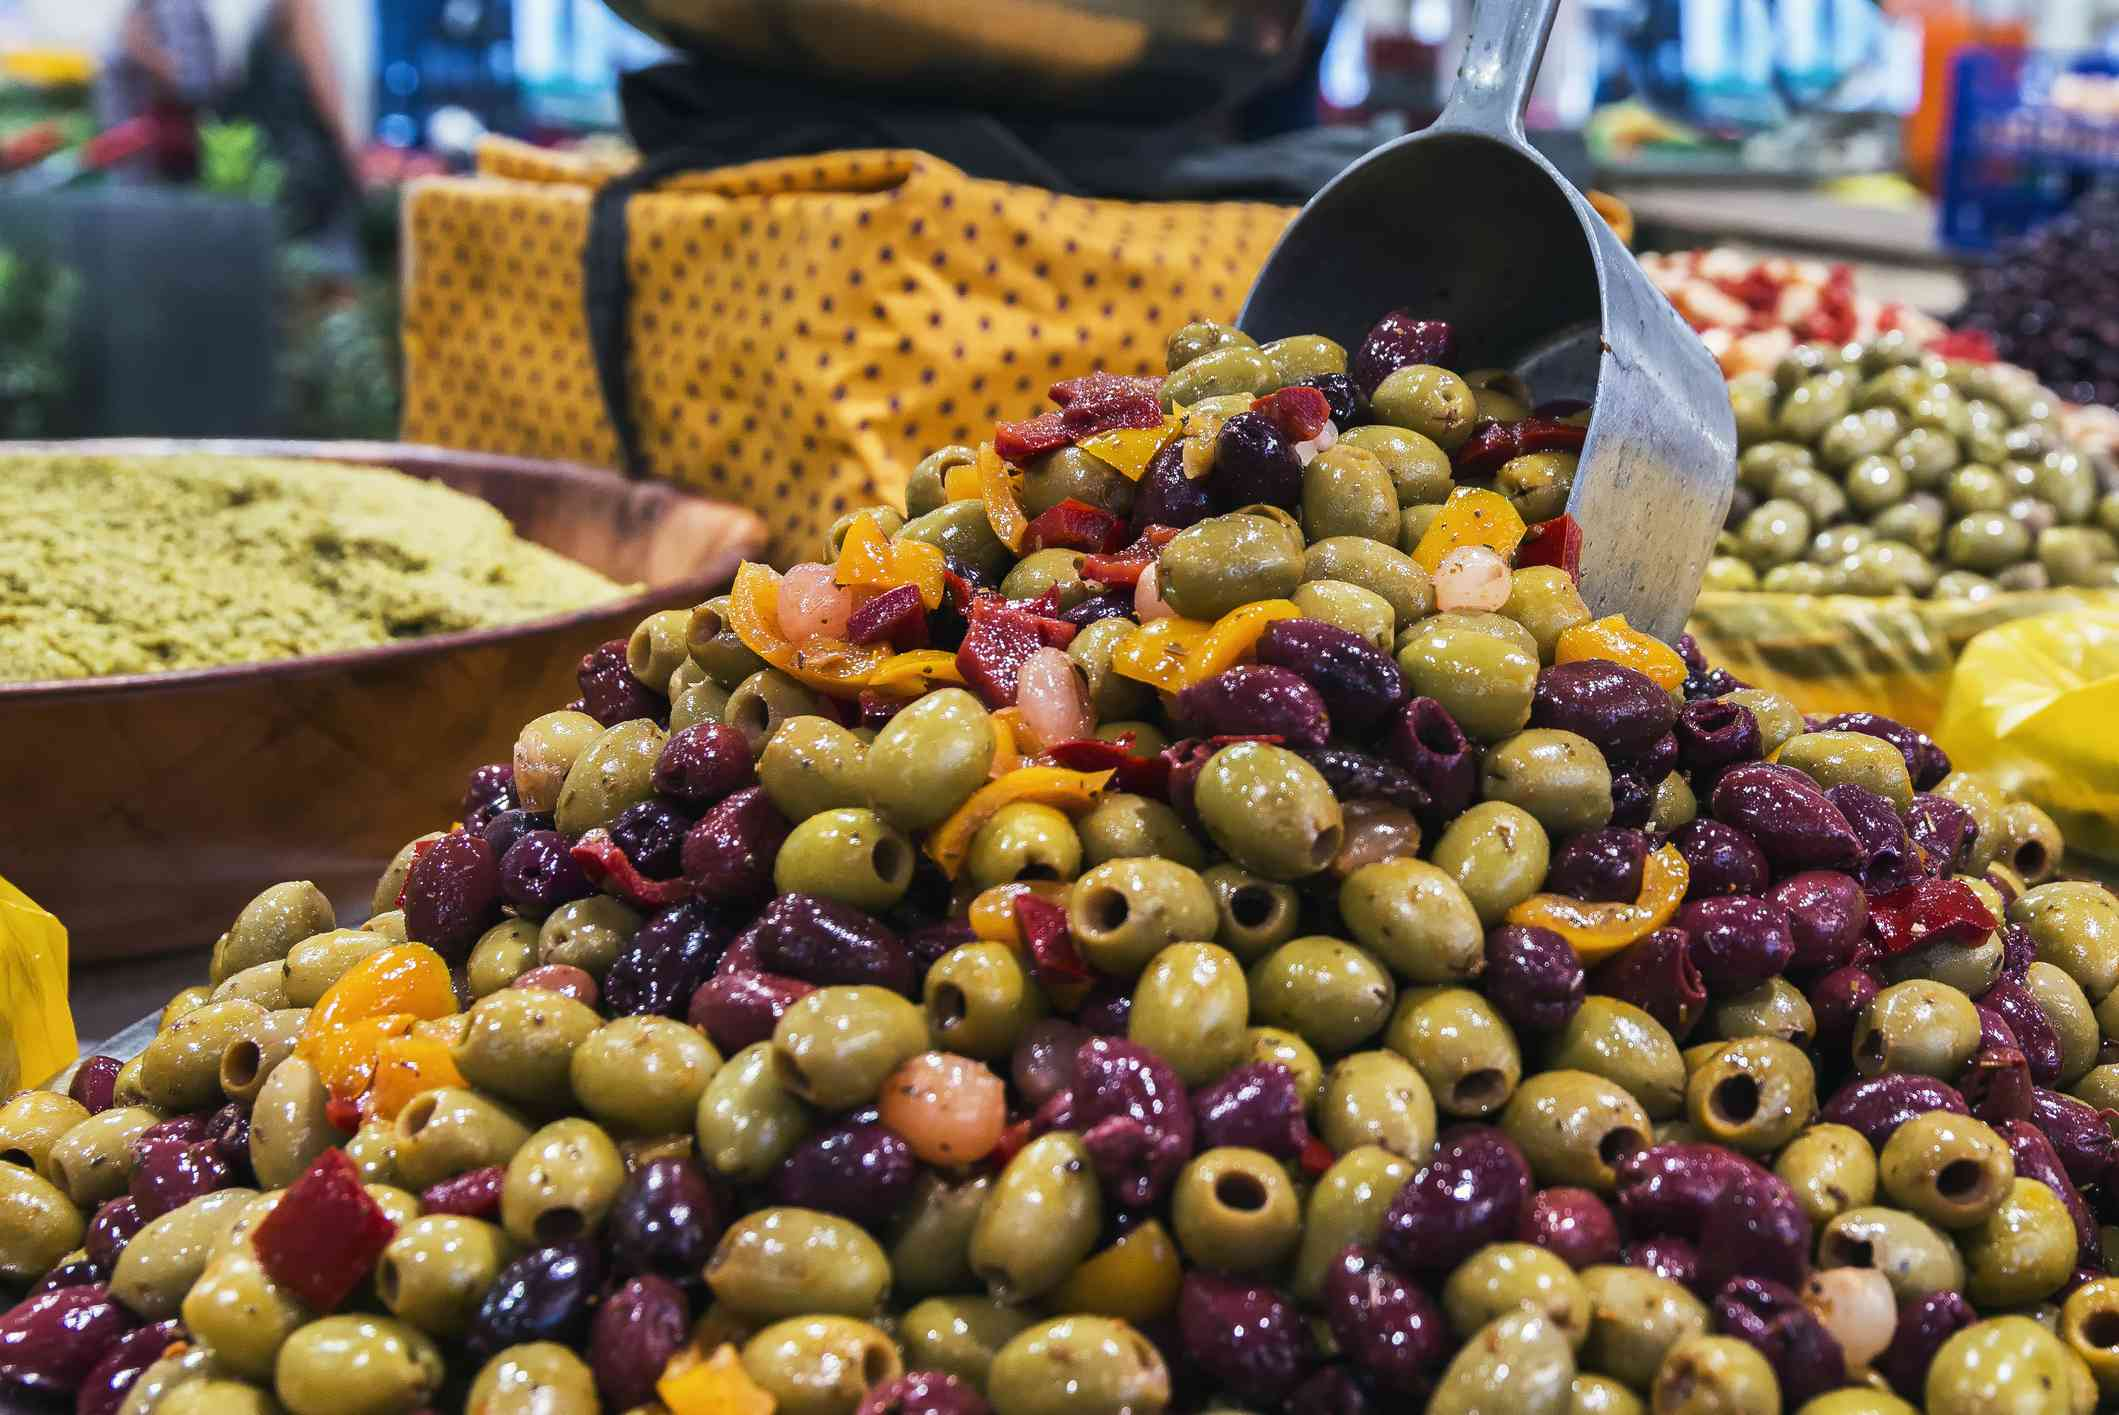 Olives at a market in Cannes, France